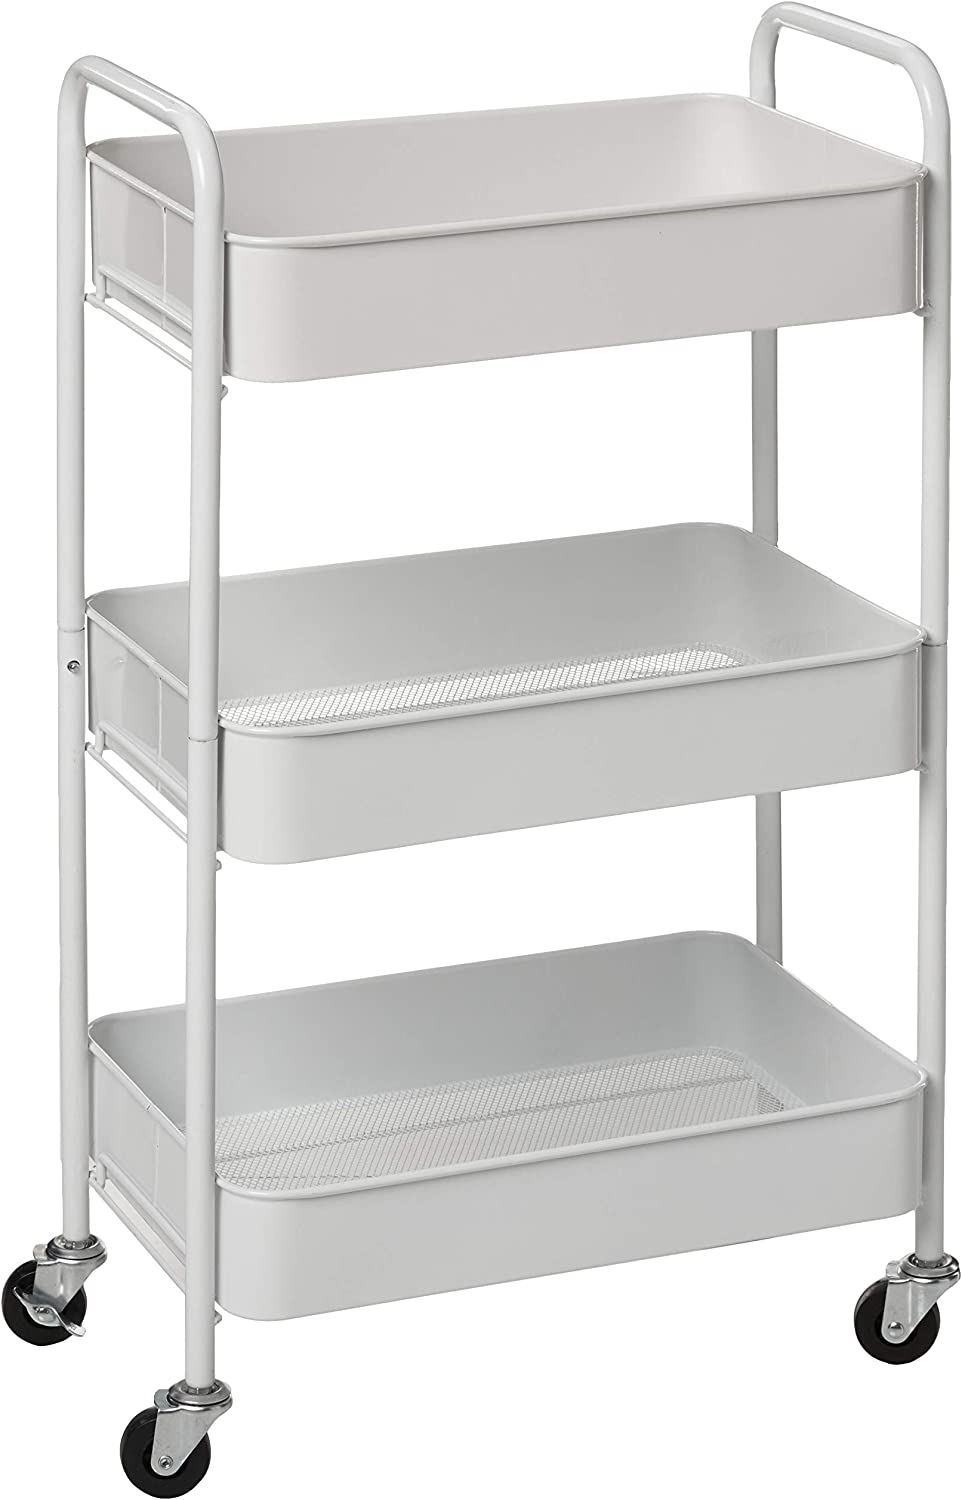 Amazon Com Caxxa 3 Tier Rolling Metal Storage Organizer Mobile Utility Cart Kitchen Cart With Caster Wheels White Kitchen Dining